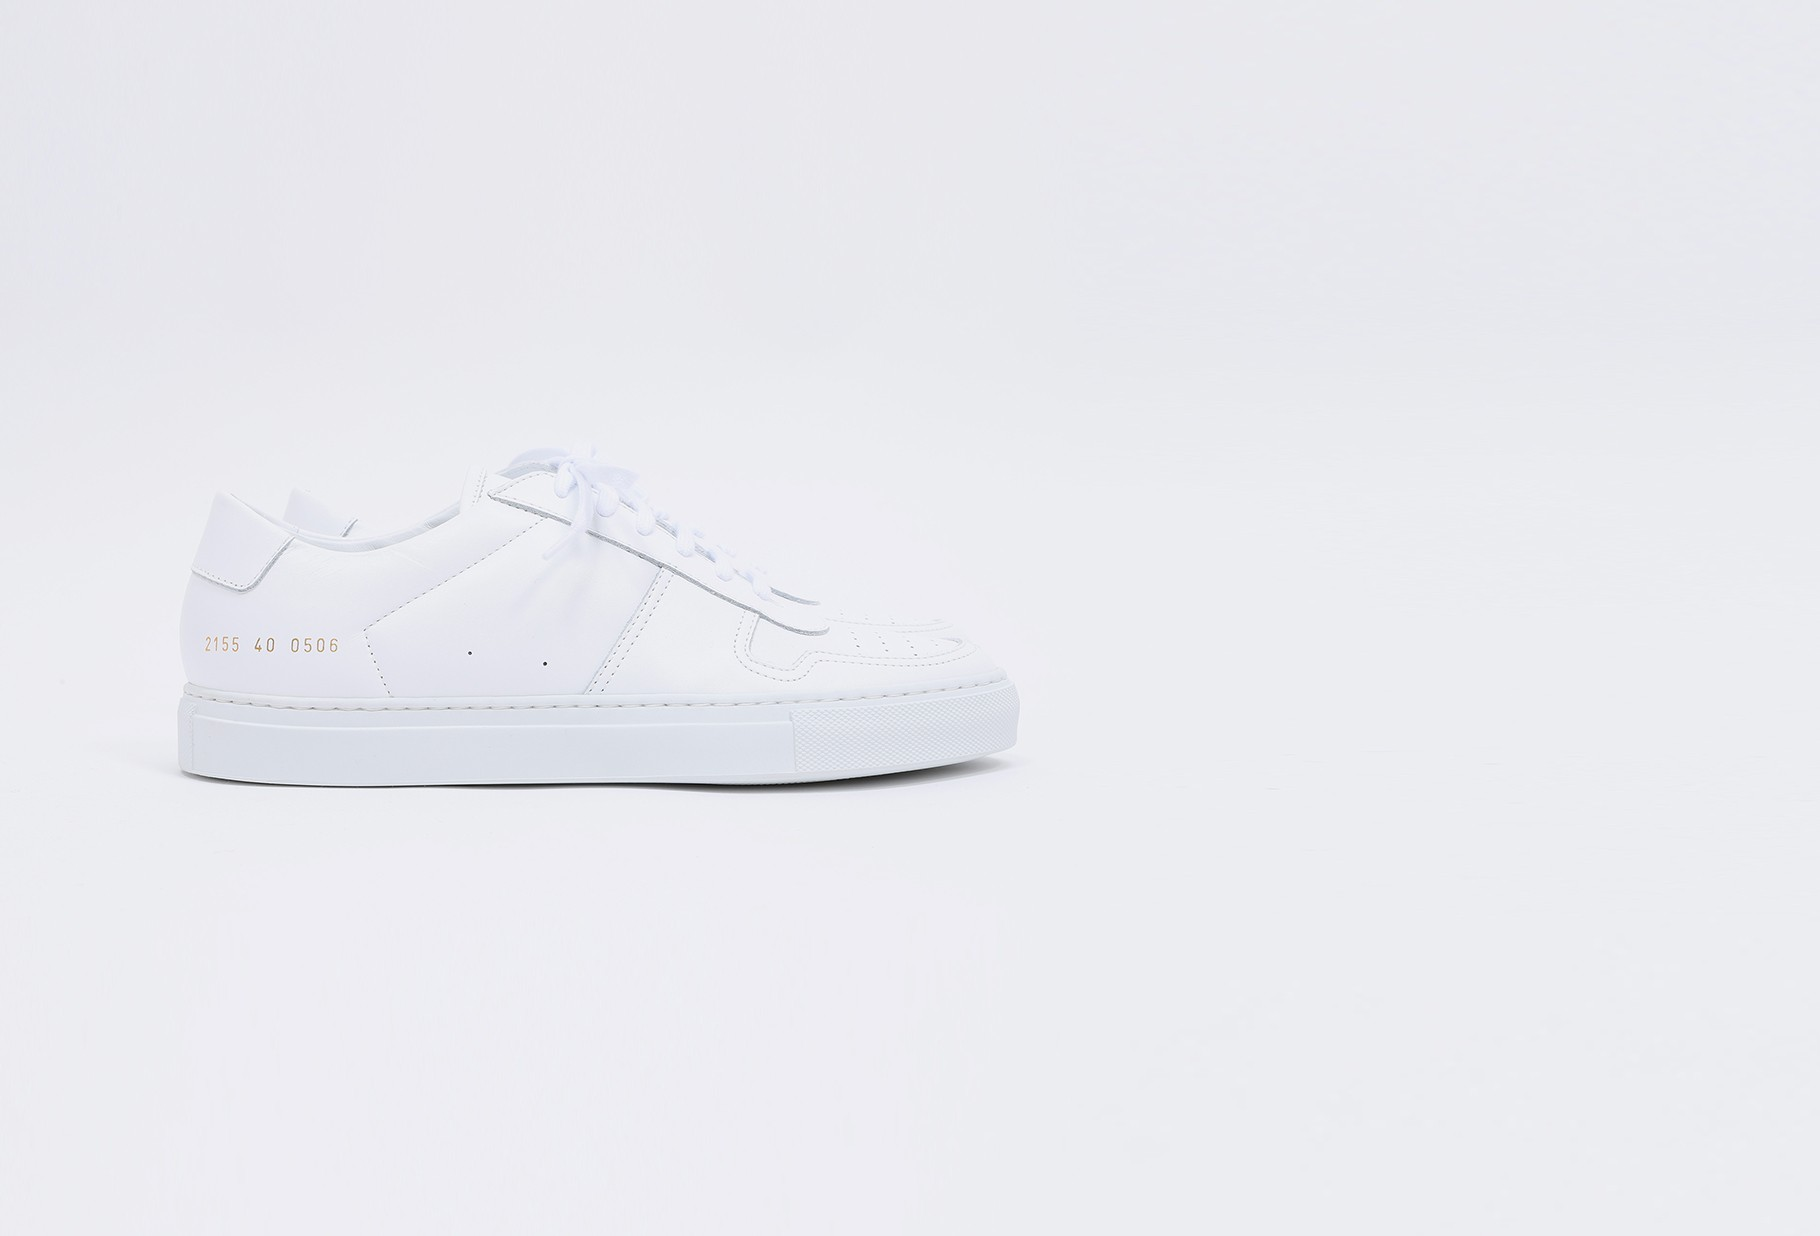 COMMON PROJECTS / Bball low in leather 2155 White 0506